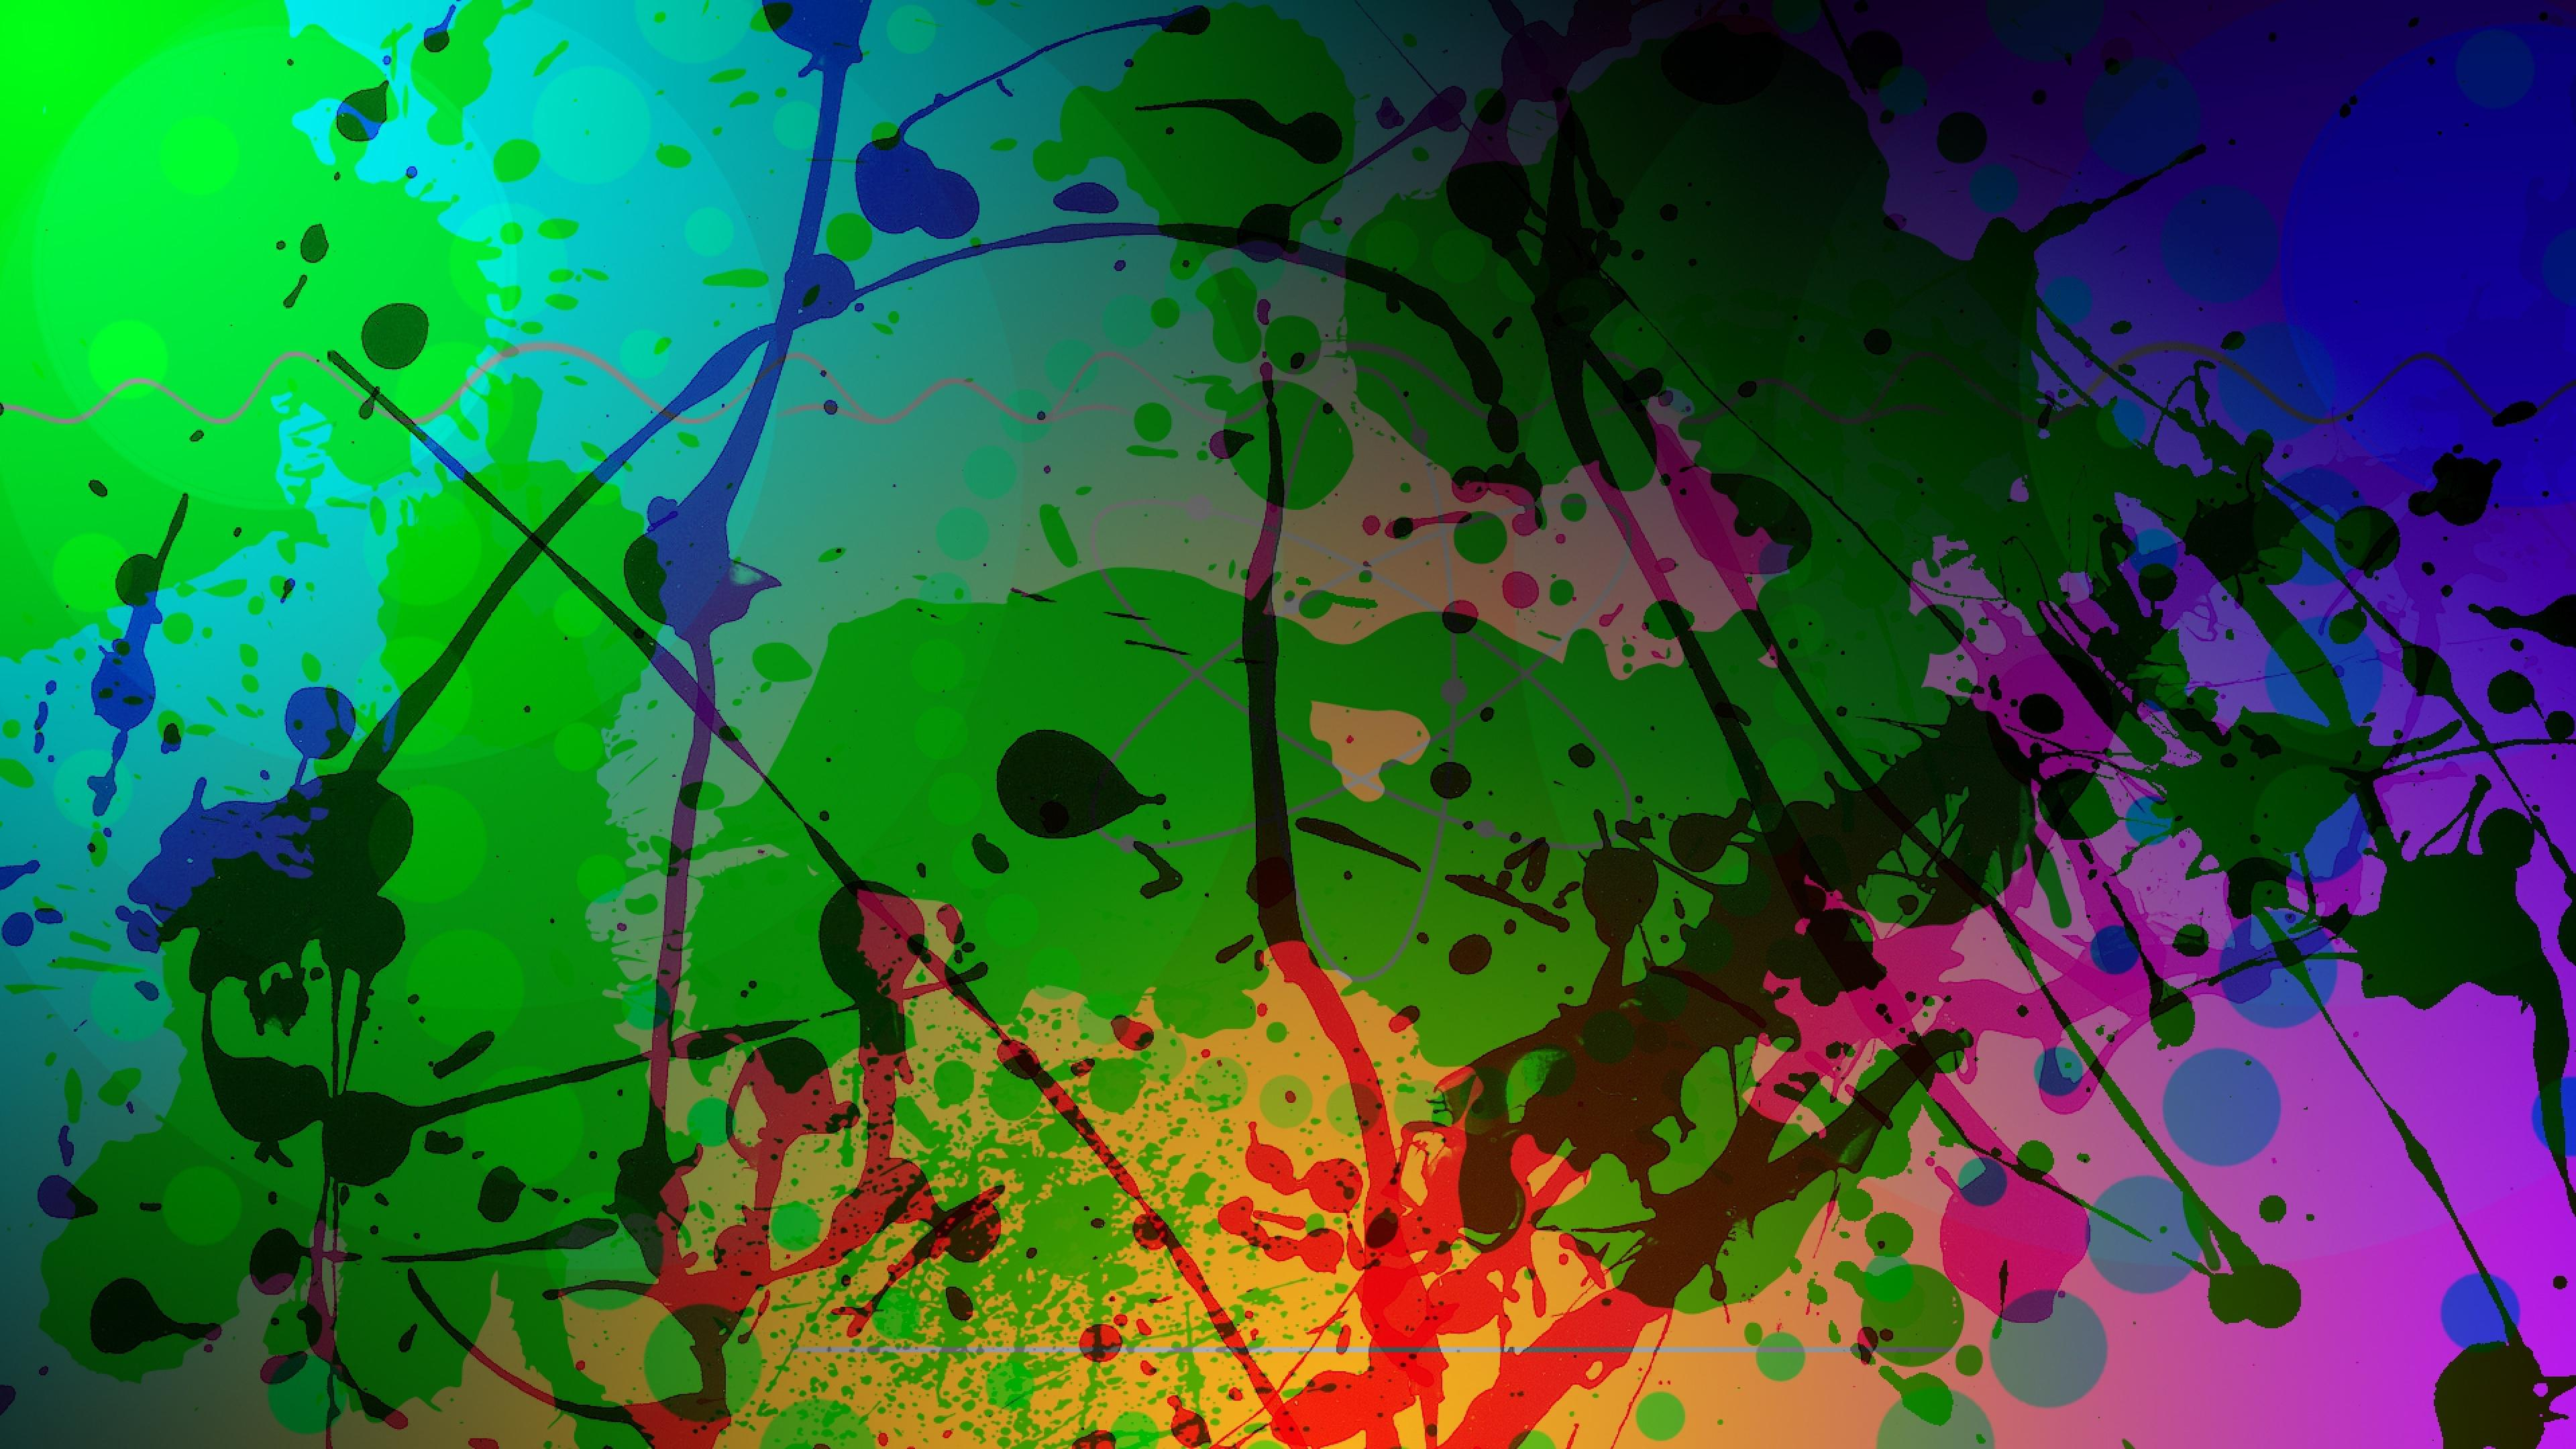 Colorful-Blur-Paint-Splash-Abstract-Abstraction-Blur-Colorful-Paint-Splash-deskto-wallpaper-wpc9003672